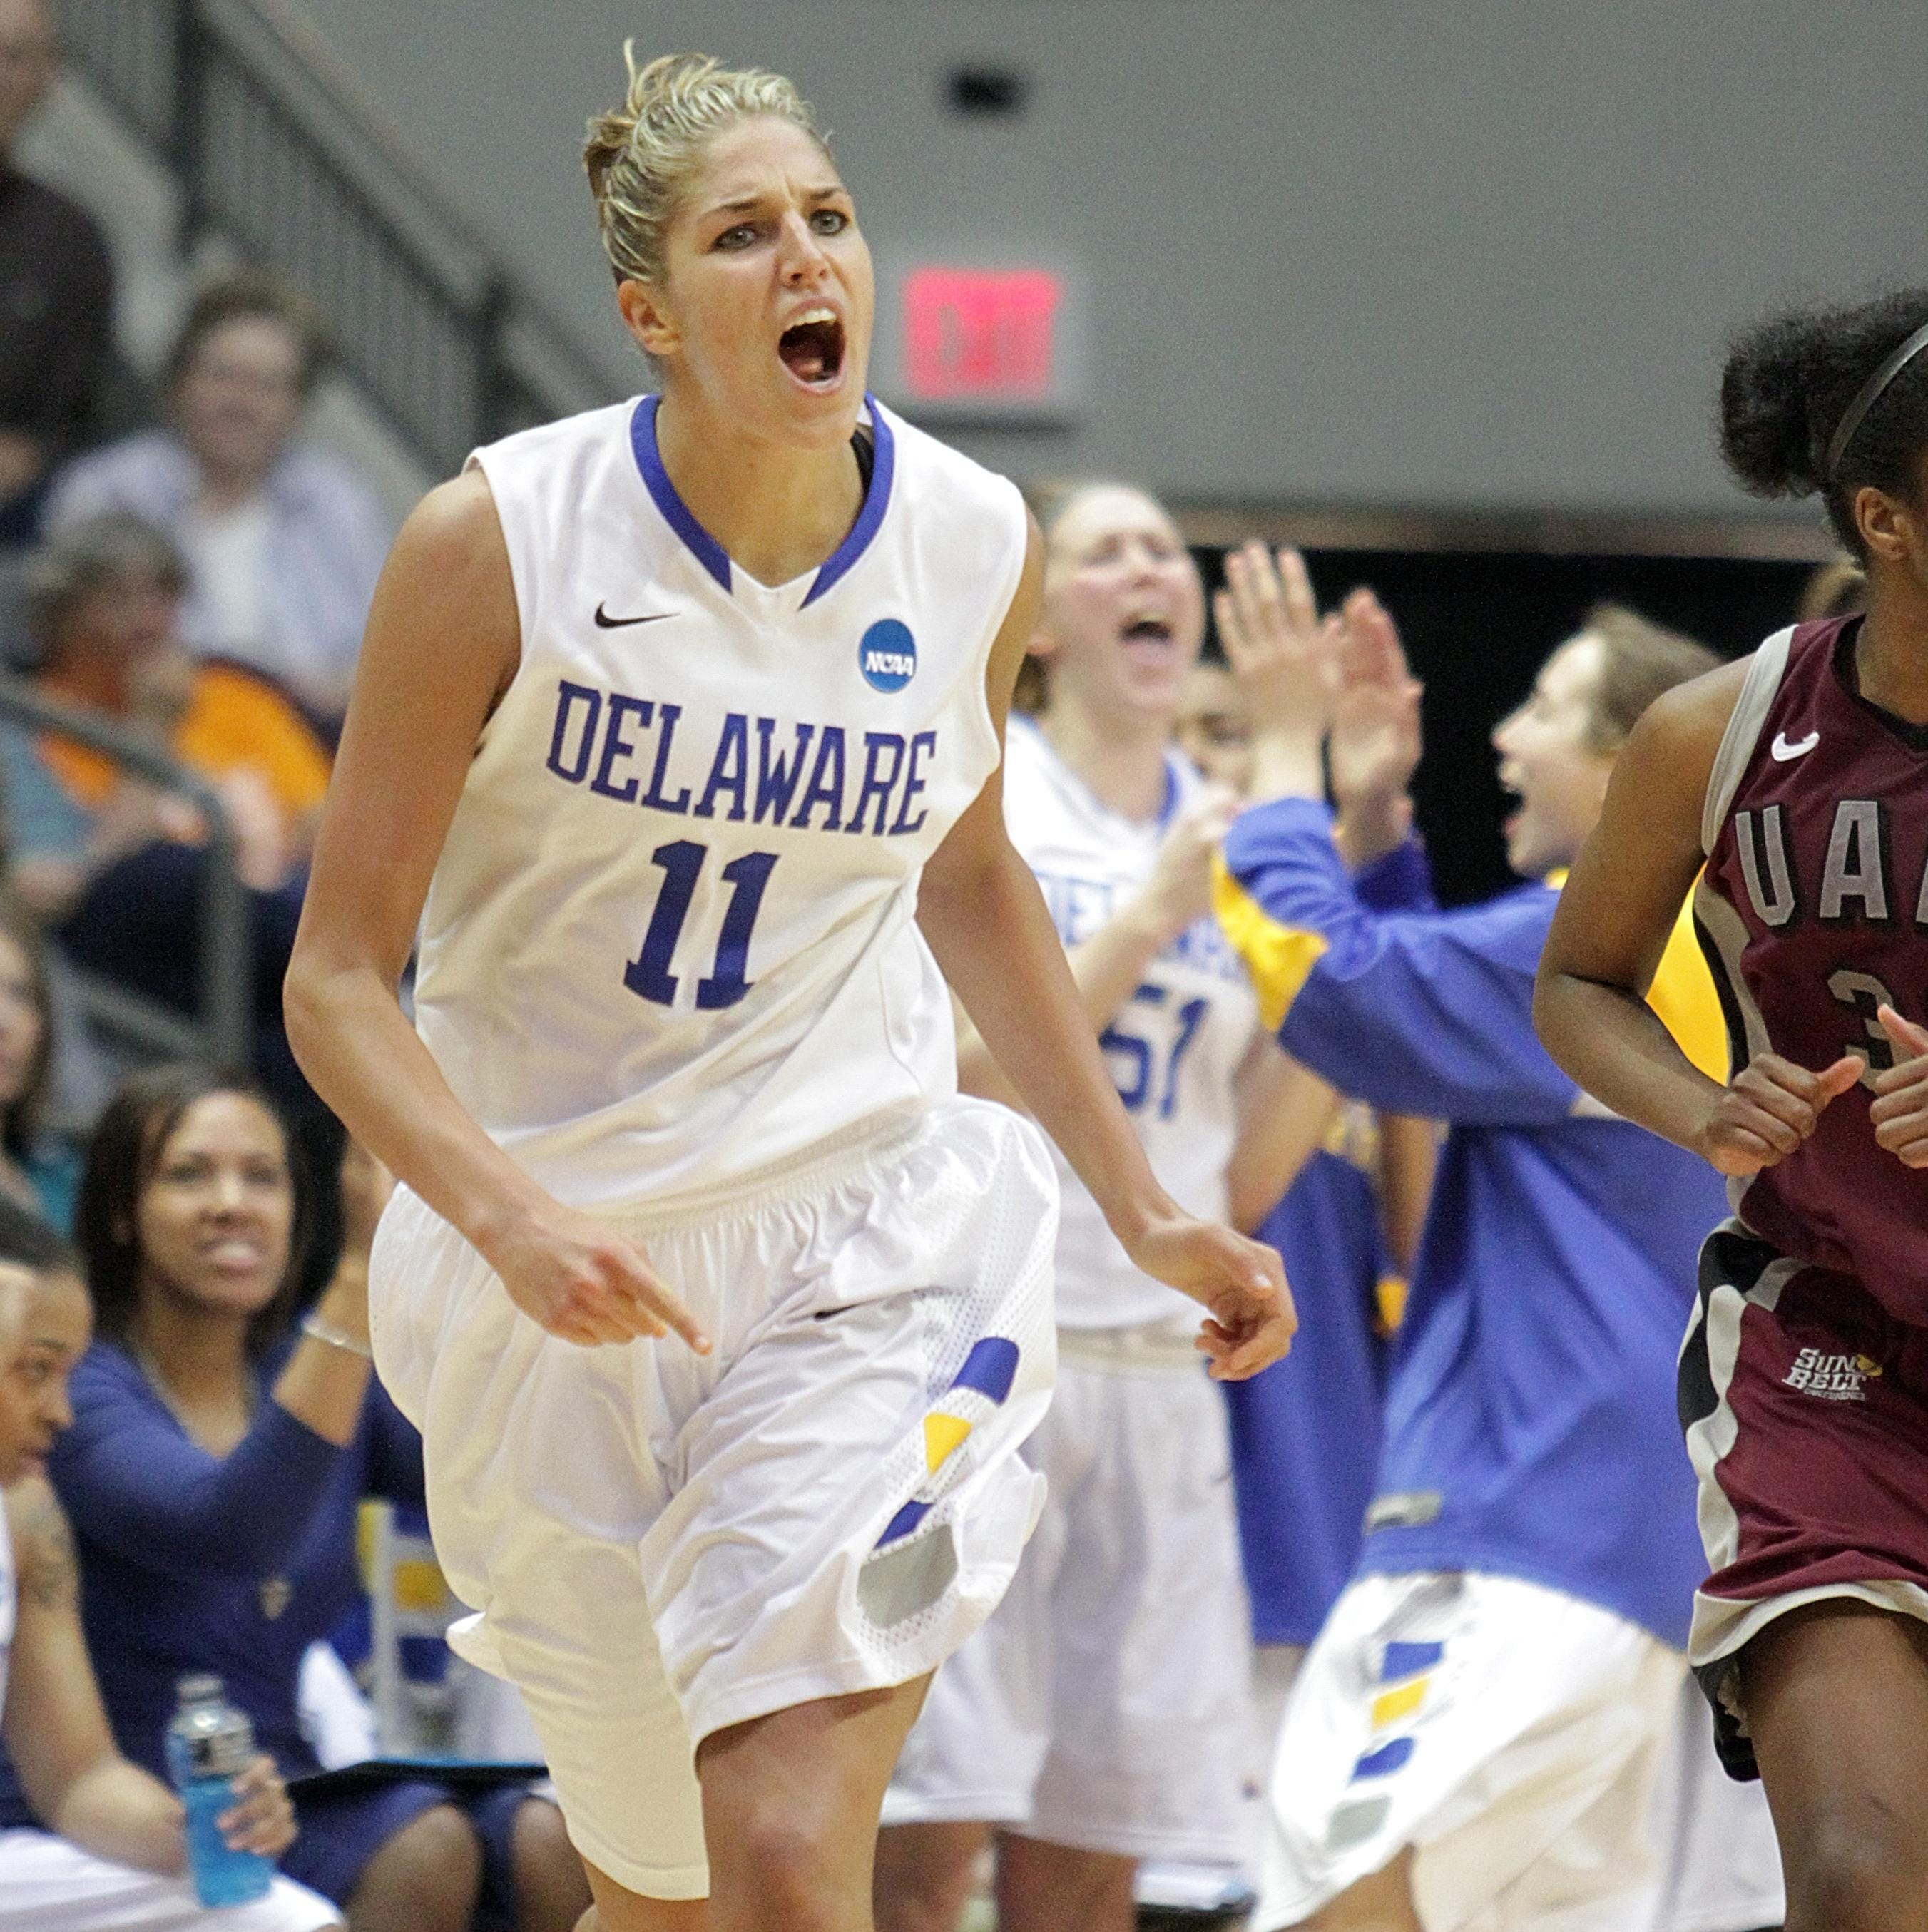 Elena Delle Donne in candid HBO interview: 'I didn't love basketball as much as my family'